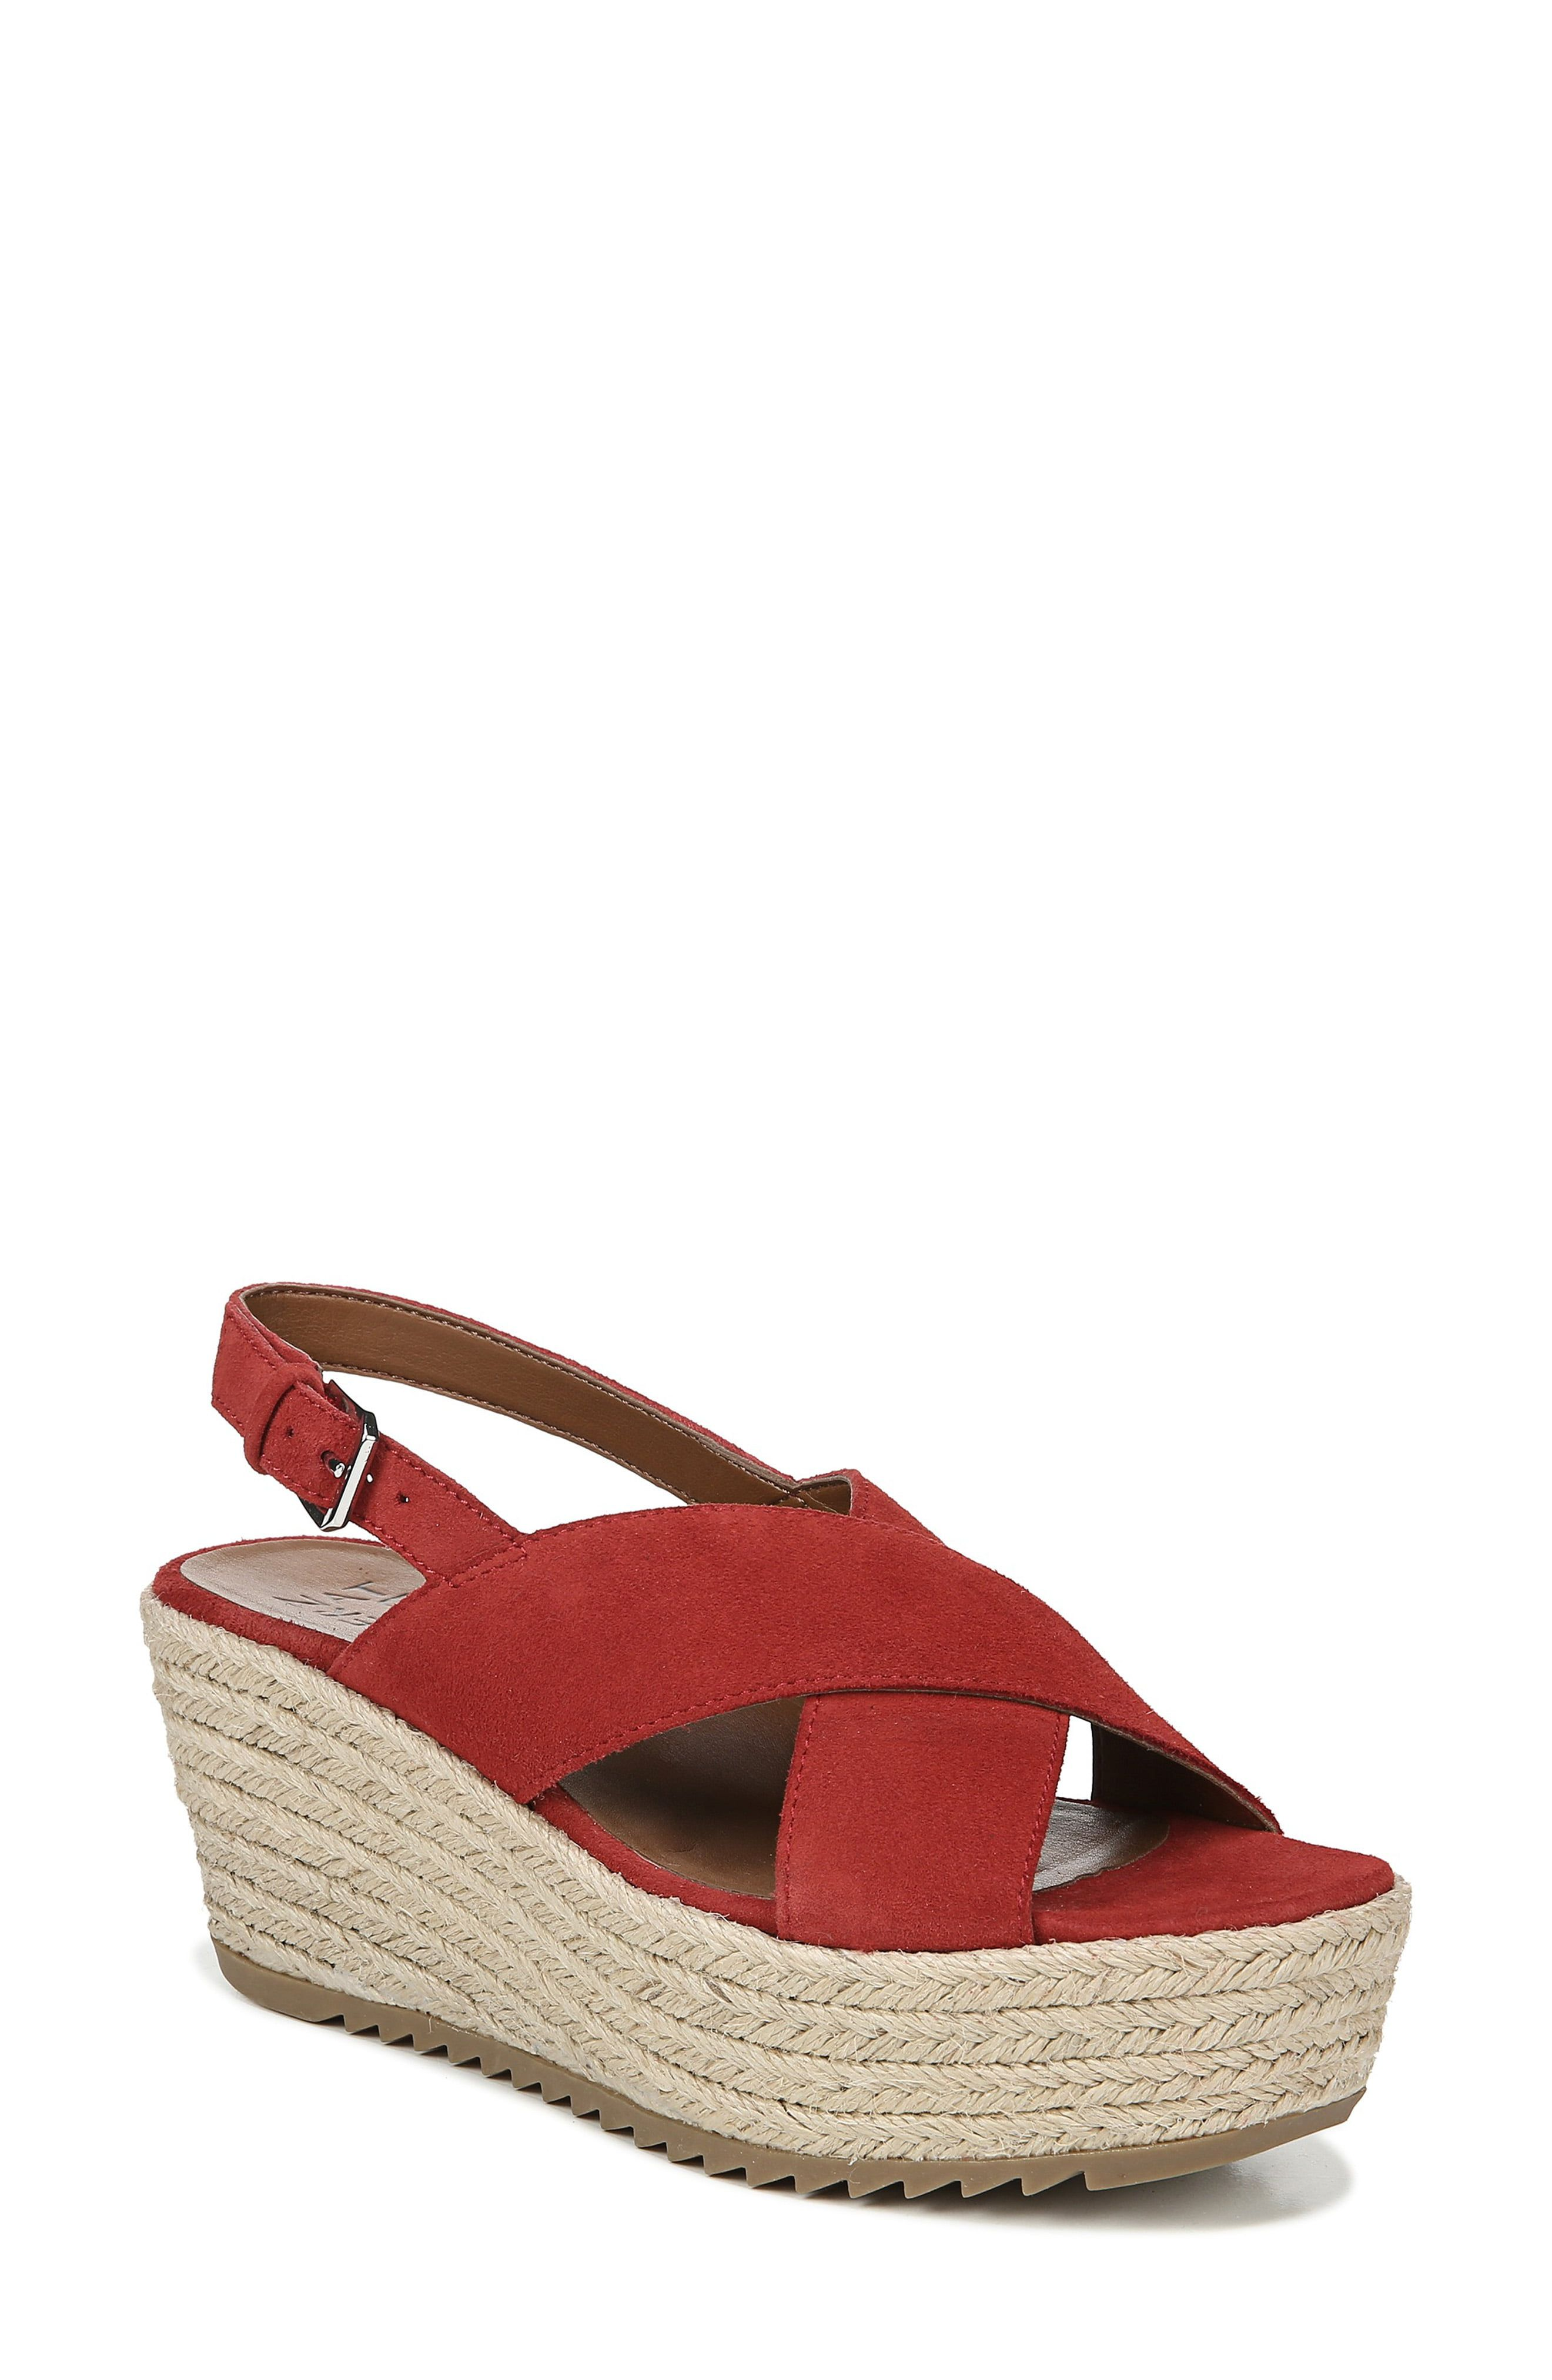 c4baadbef8f Women's Naturalizer Oak Espadrille Wedge Sandal, Size 4 M - Red ...